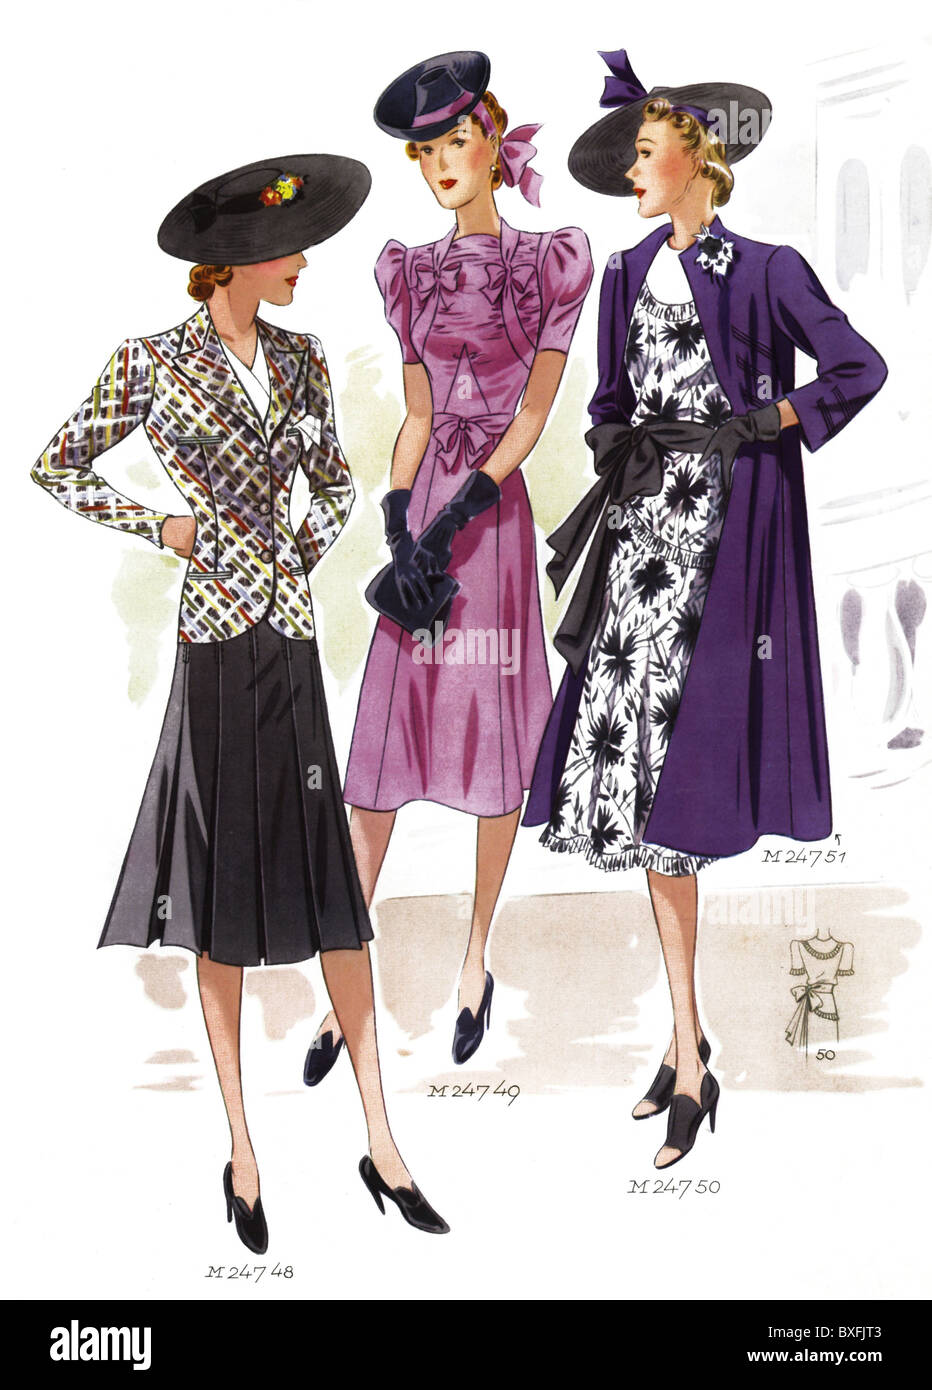 Fashion Flashback: Style From the 20s and 30s StyleCaster 5